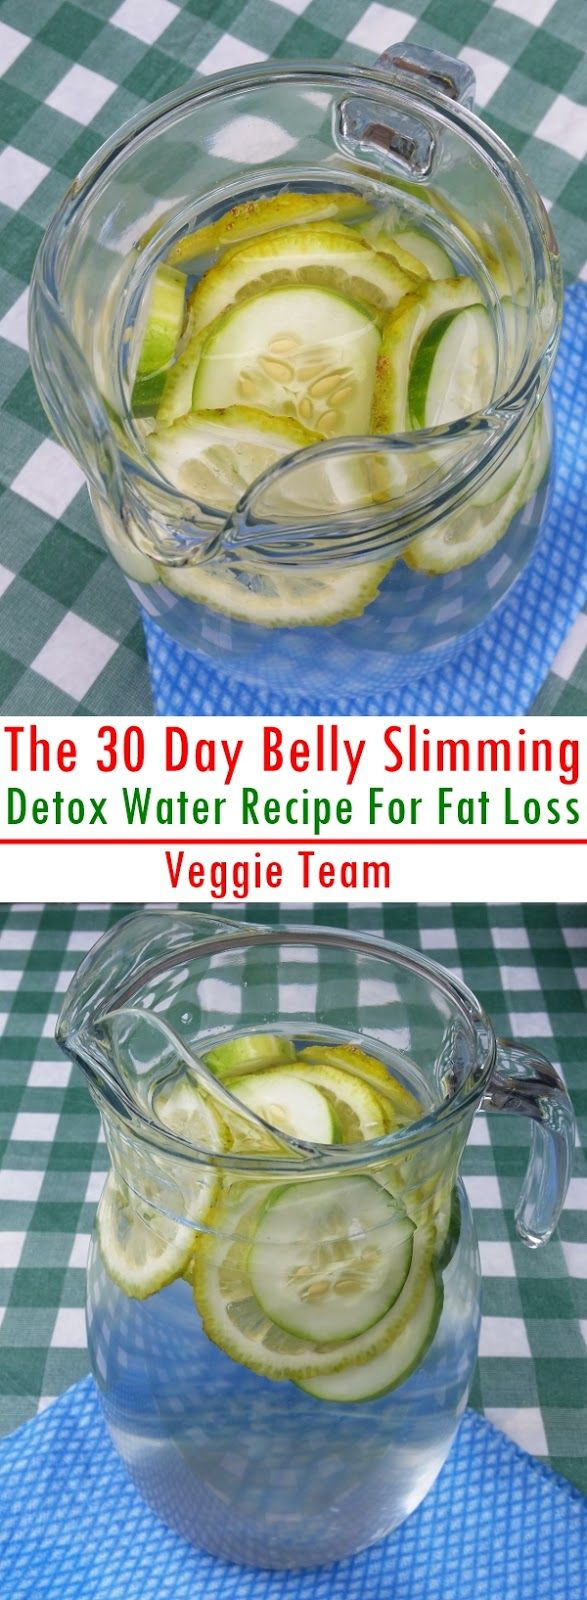 Get rid of that big belly that is weighing you down and preventing you from living a normal happy life with The 30 Day Belly Slimming Detox Water Recipe.